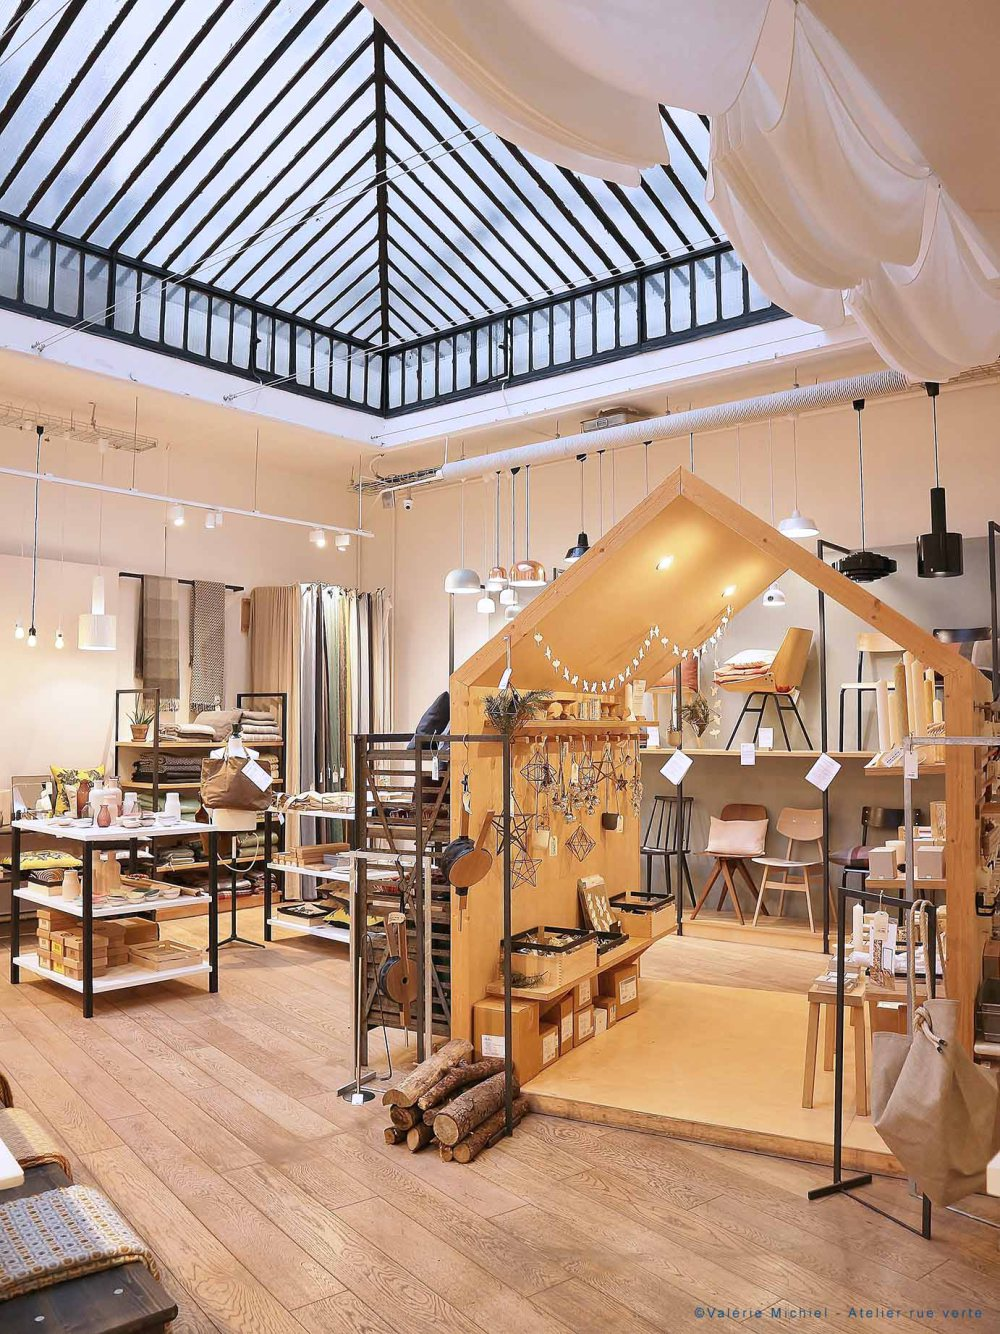 Concept Design Stores in Paris You Should Visit luxury travel Luxury Travel: 5 Reasons Why Paris Should Be Your Next Destination Concept Design Stores in Paris You Should Visit 01 luxury travel Luxury Travel: 5 Reasons Why Paris Should Be Your Next Destination Concept Design Stores in Paris You Should Visit 01